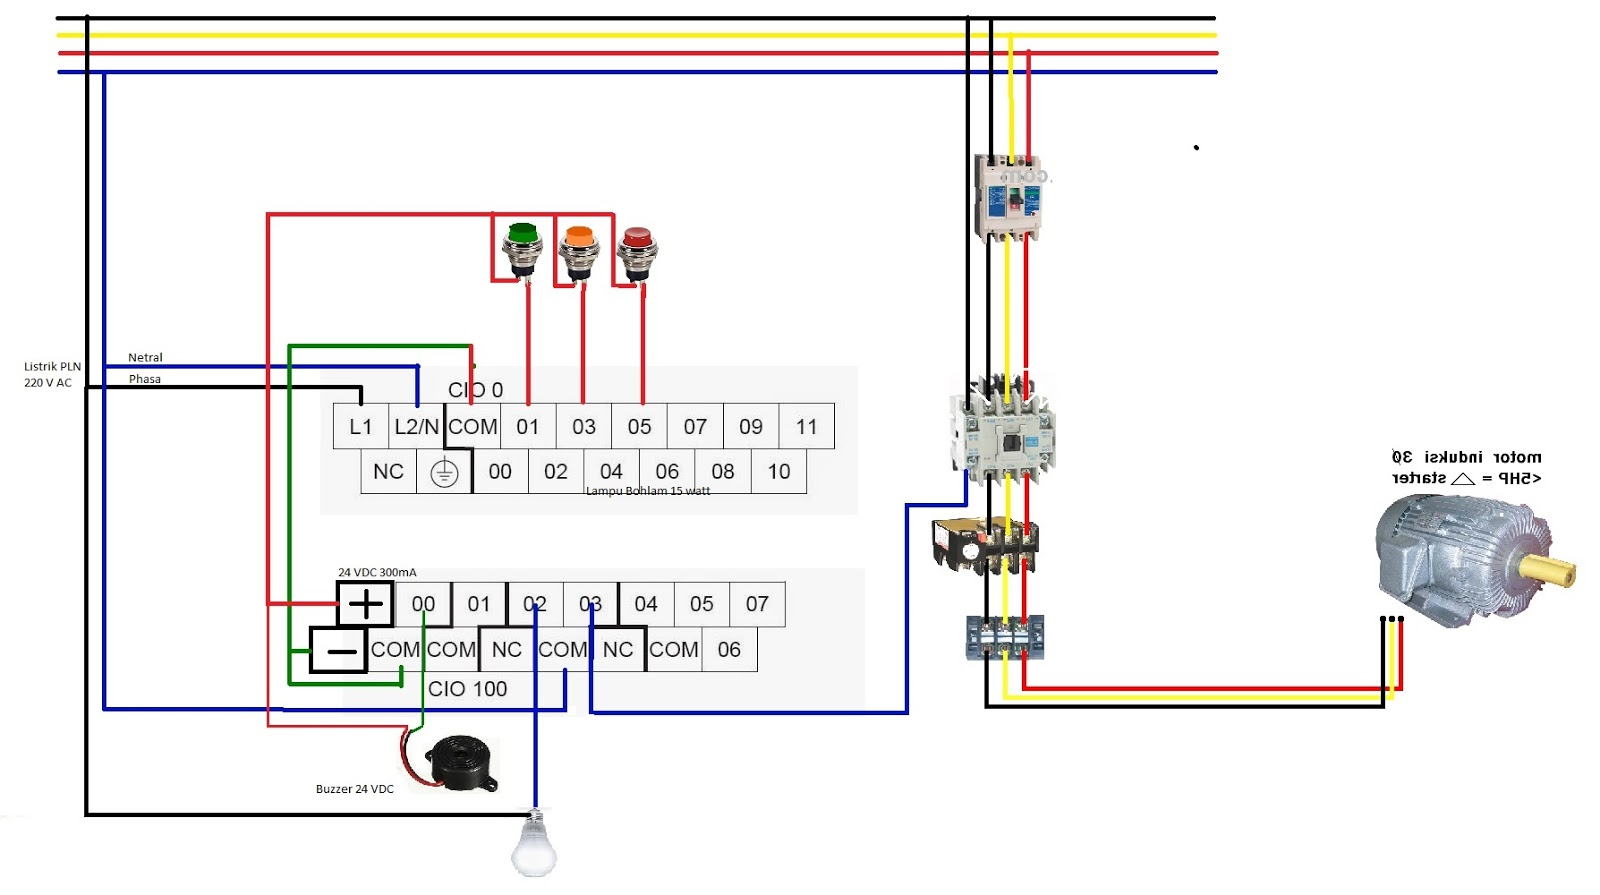 Wiring Diagram Listrik Adalah Wire Center Is 5v 3a Switching Regulator Circuit By Lm257650 Simple Omron Part 3 Cara Memasang Input Output Pada Plc Kendali Motor Rh Stc Sharing Com